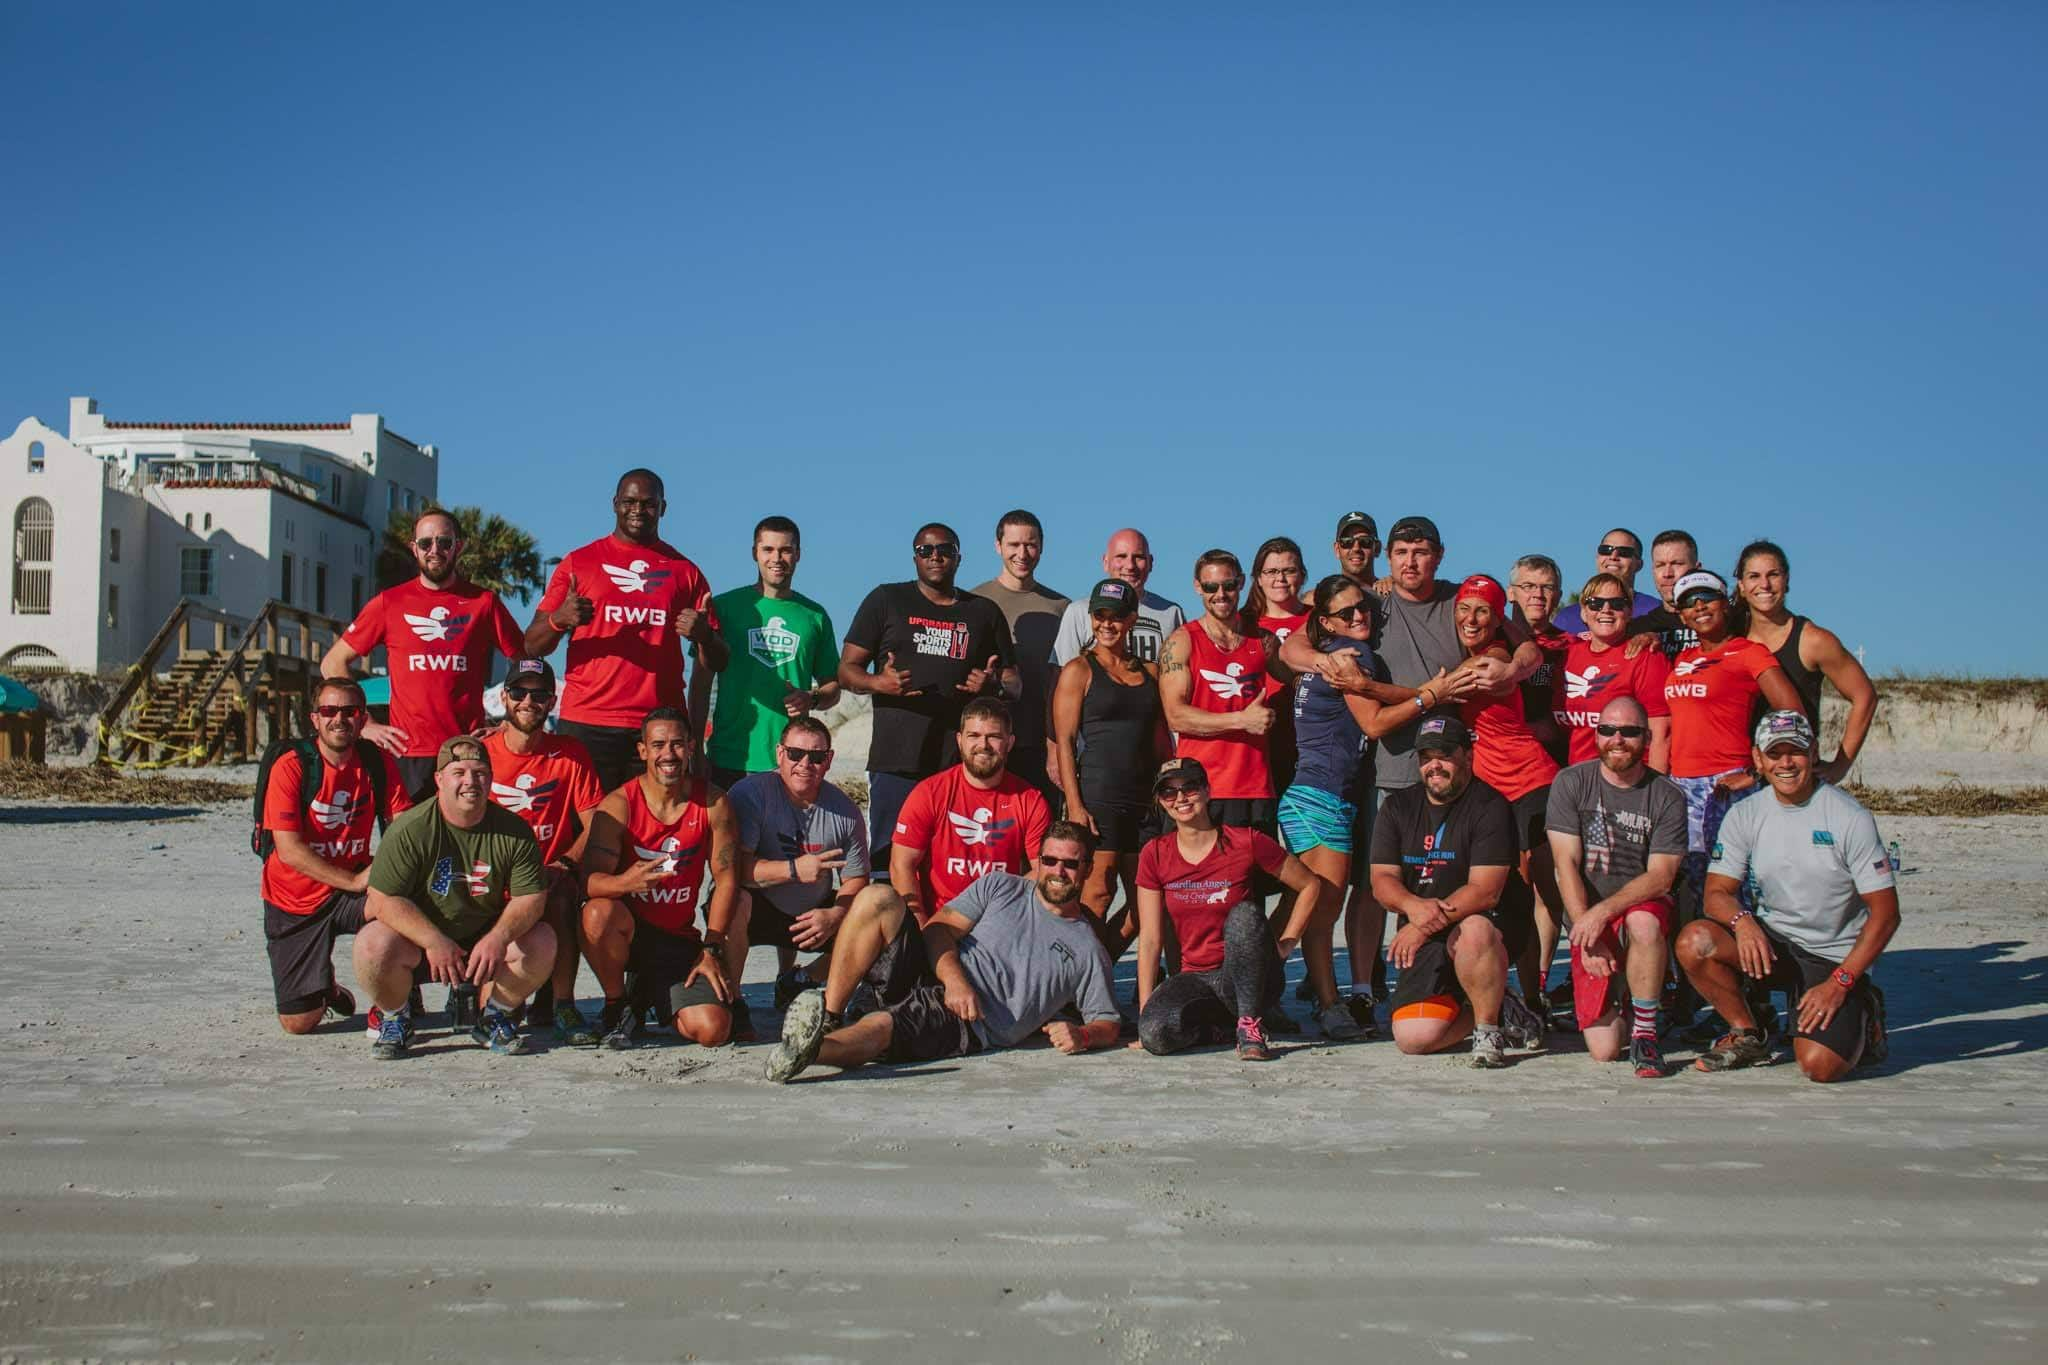 team-rwb-national-goruck-camp-2016-rucking-university-morning-pt-group